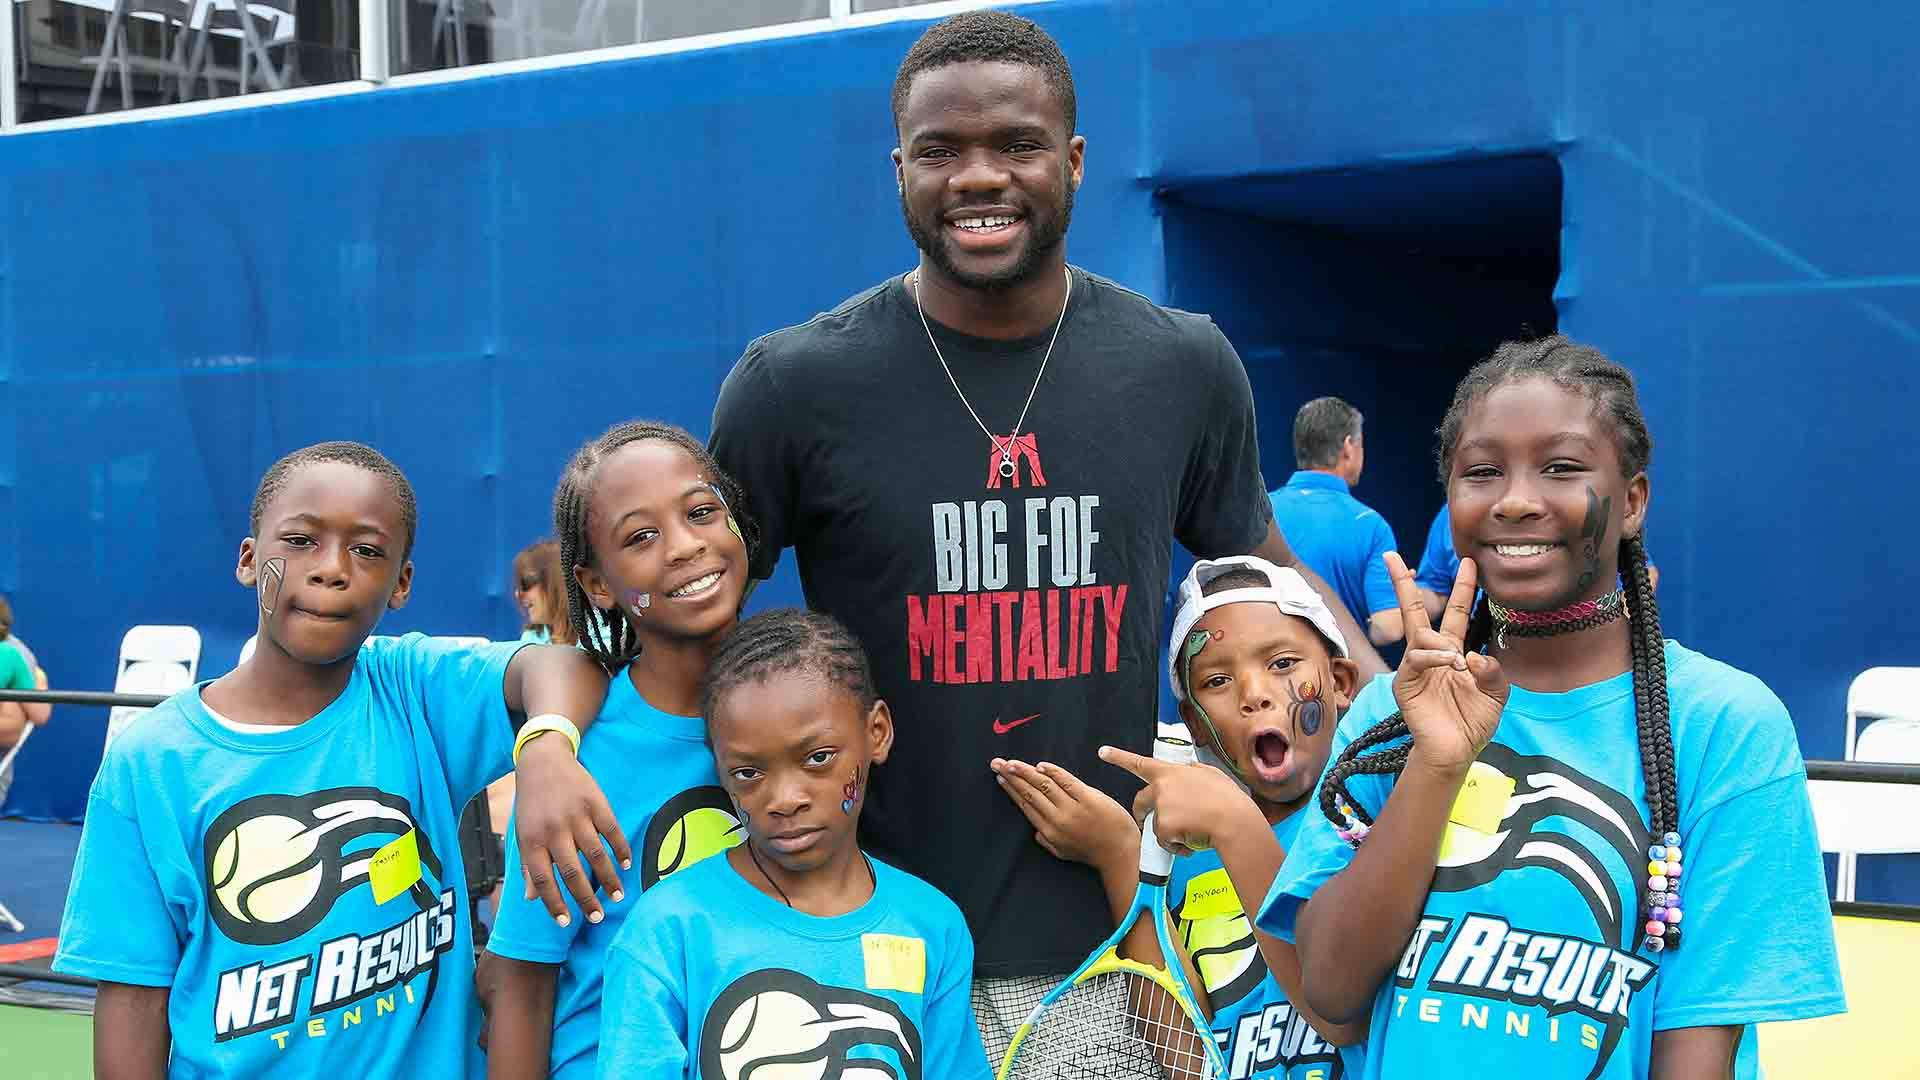 Frances Tiafoe poses for a photo during kids' day at the BB&T Atlanta Open